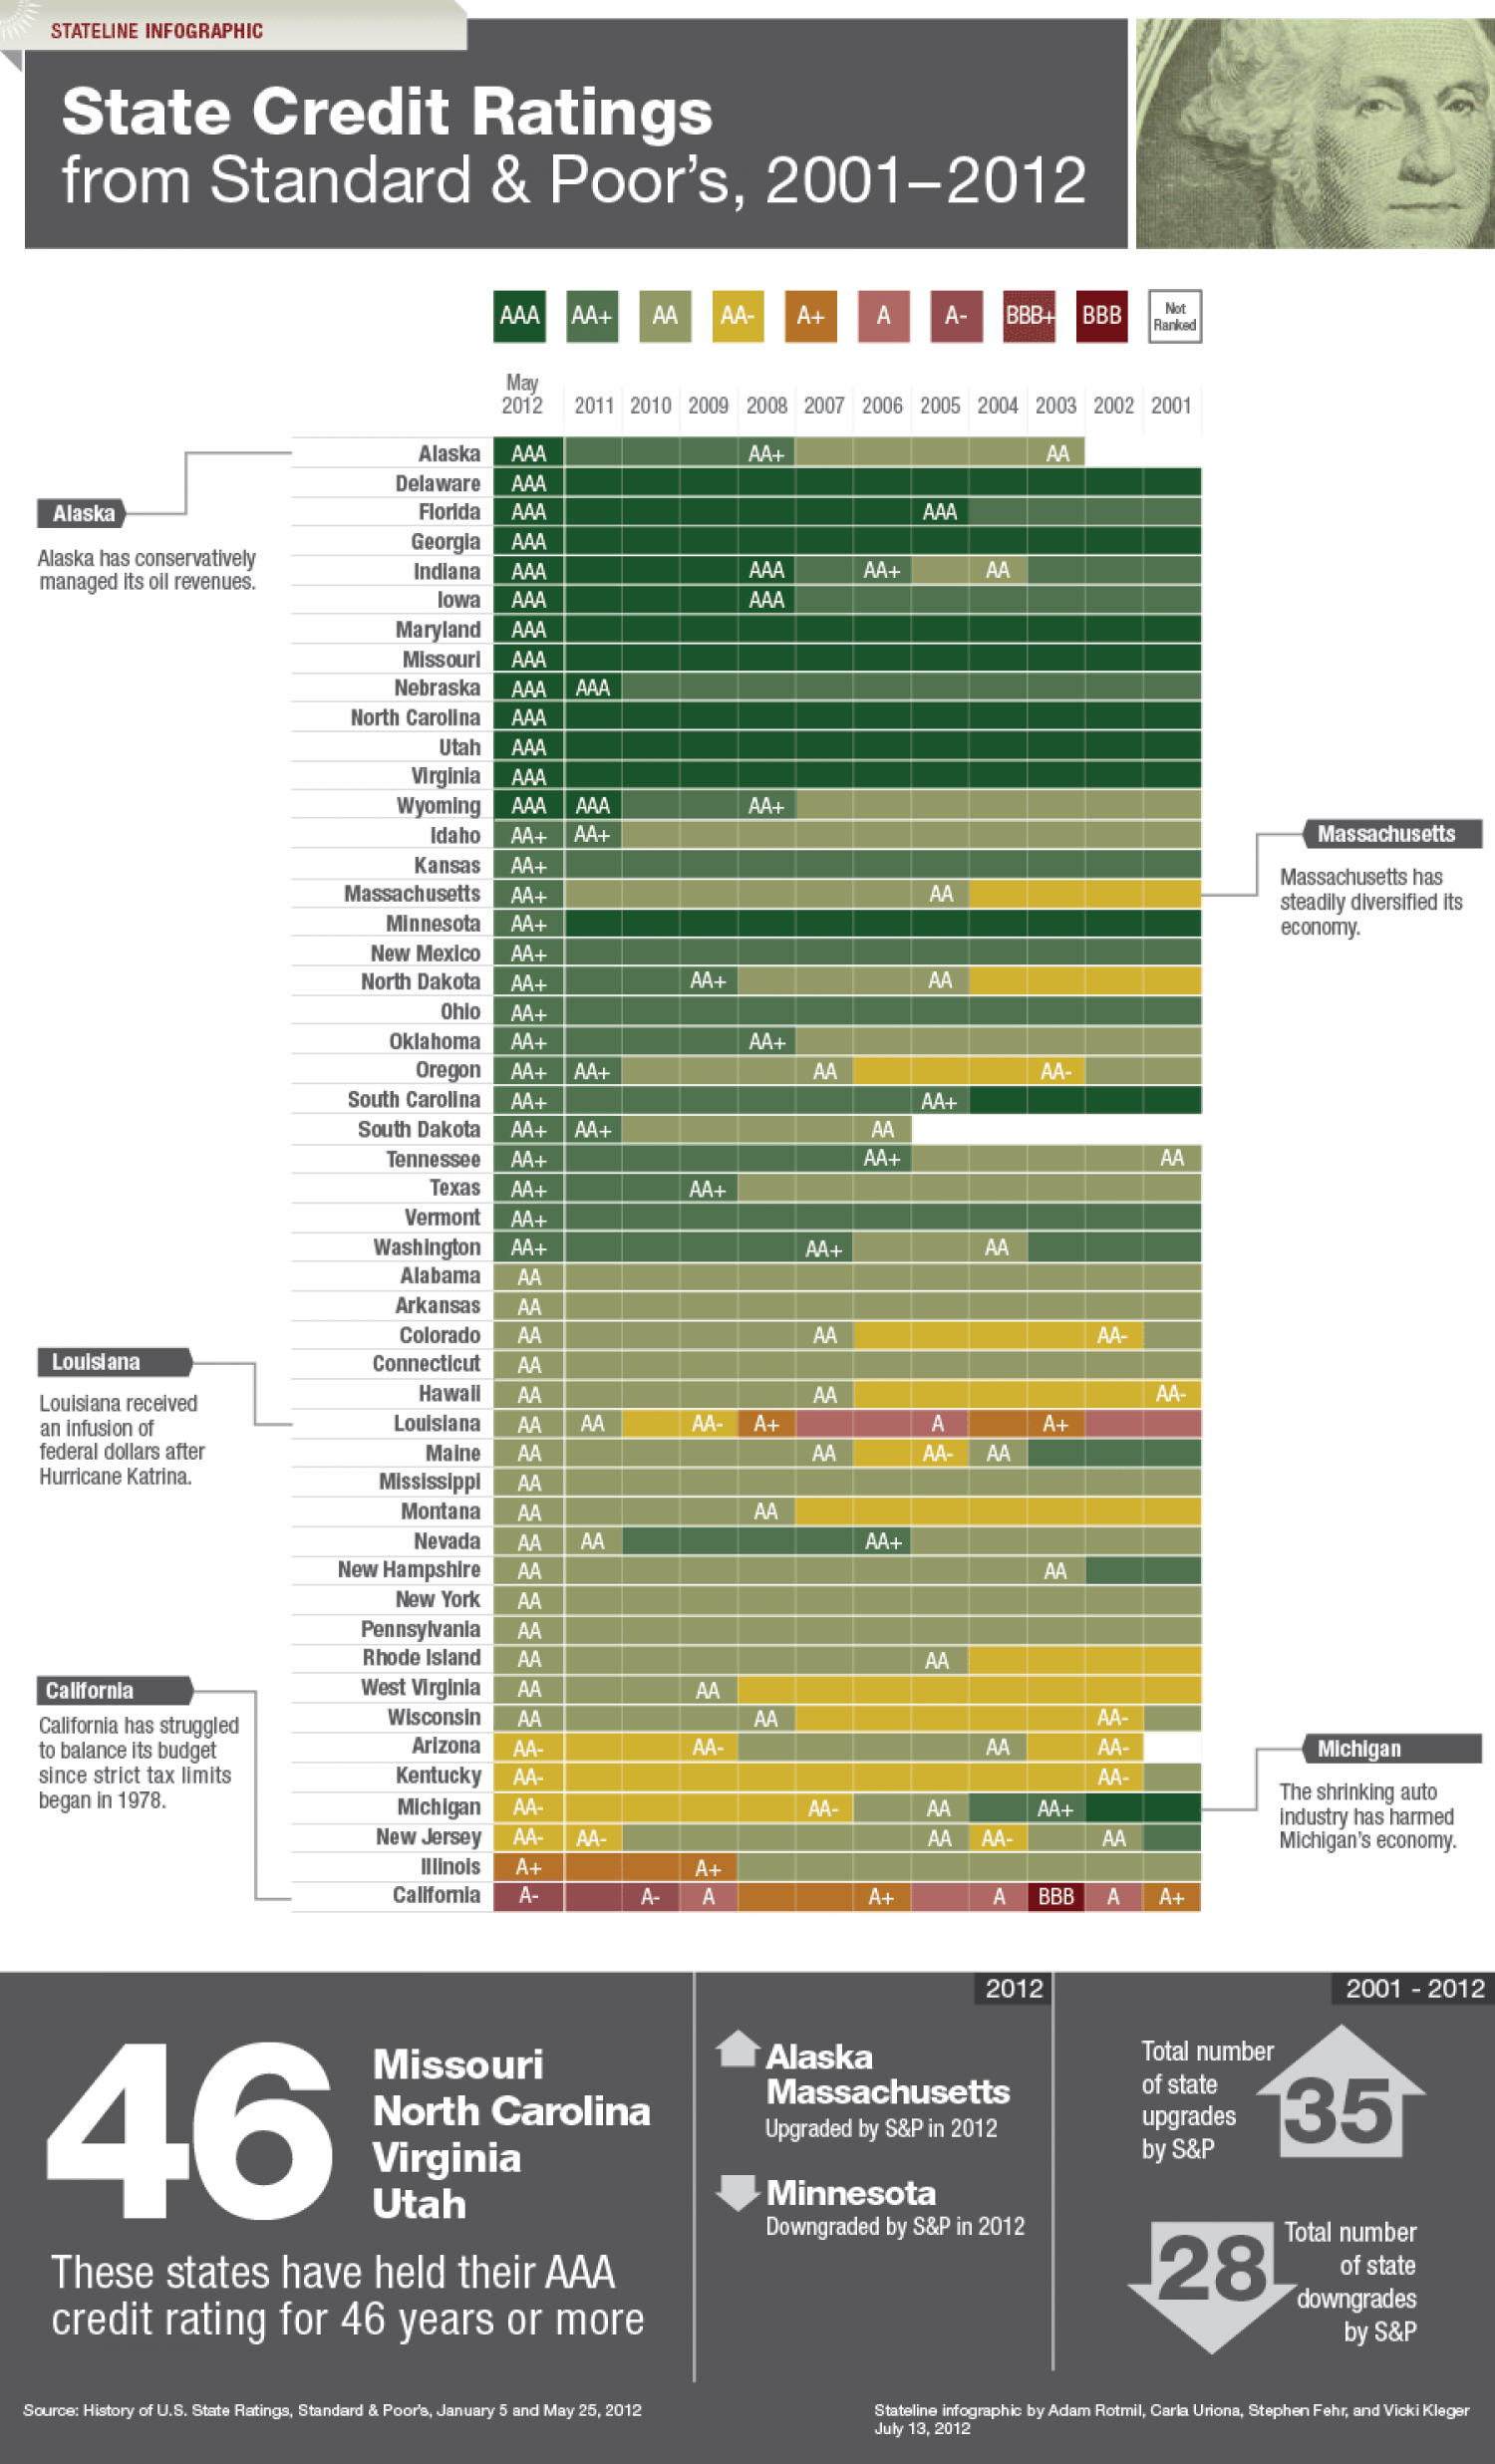 A History of State Credit Ratings (S&P) Infographic